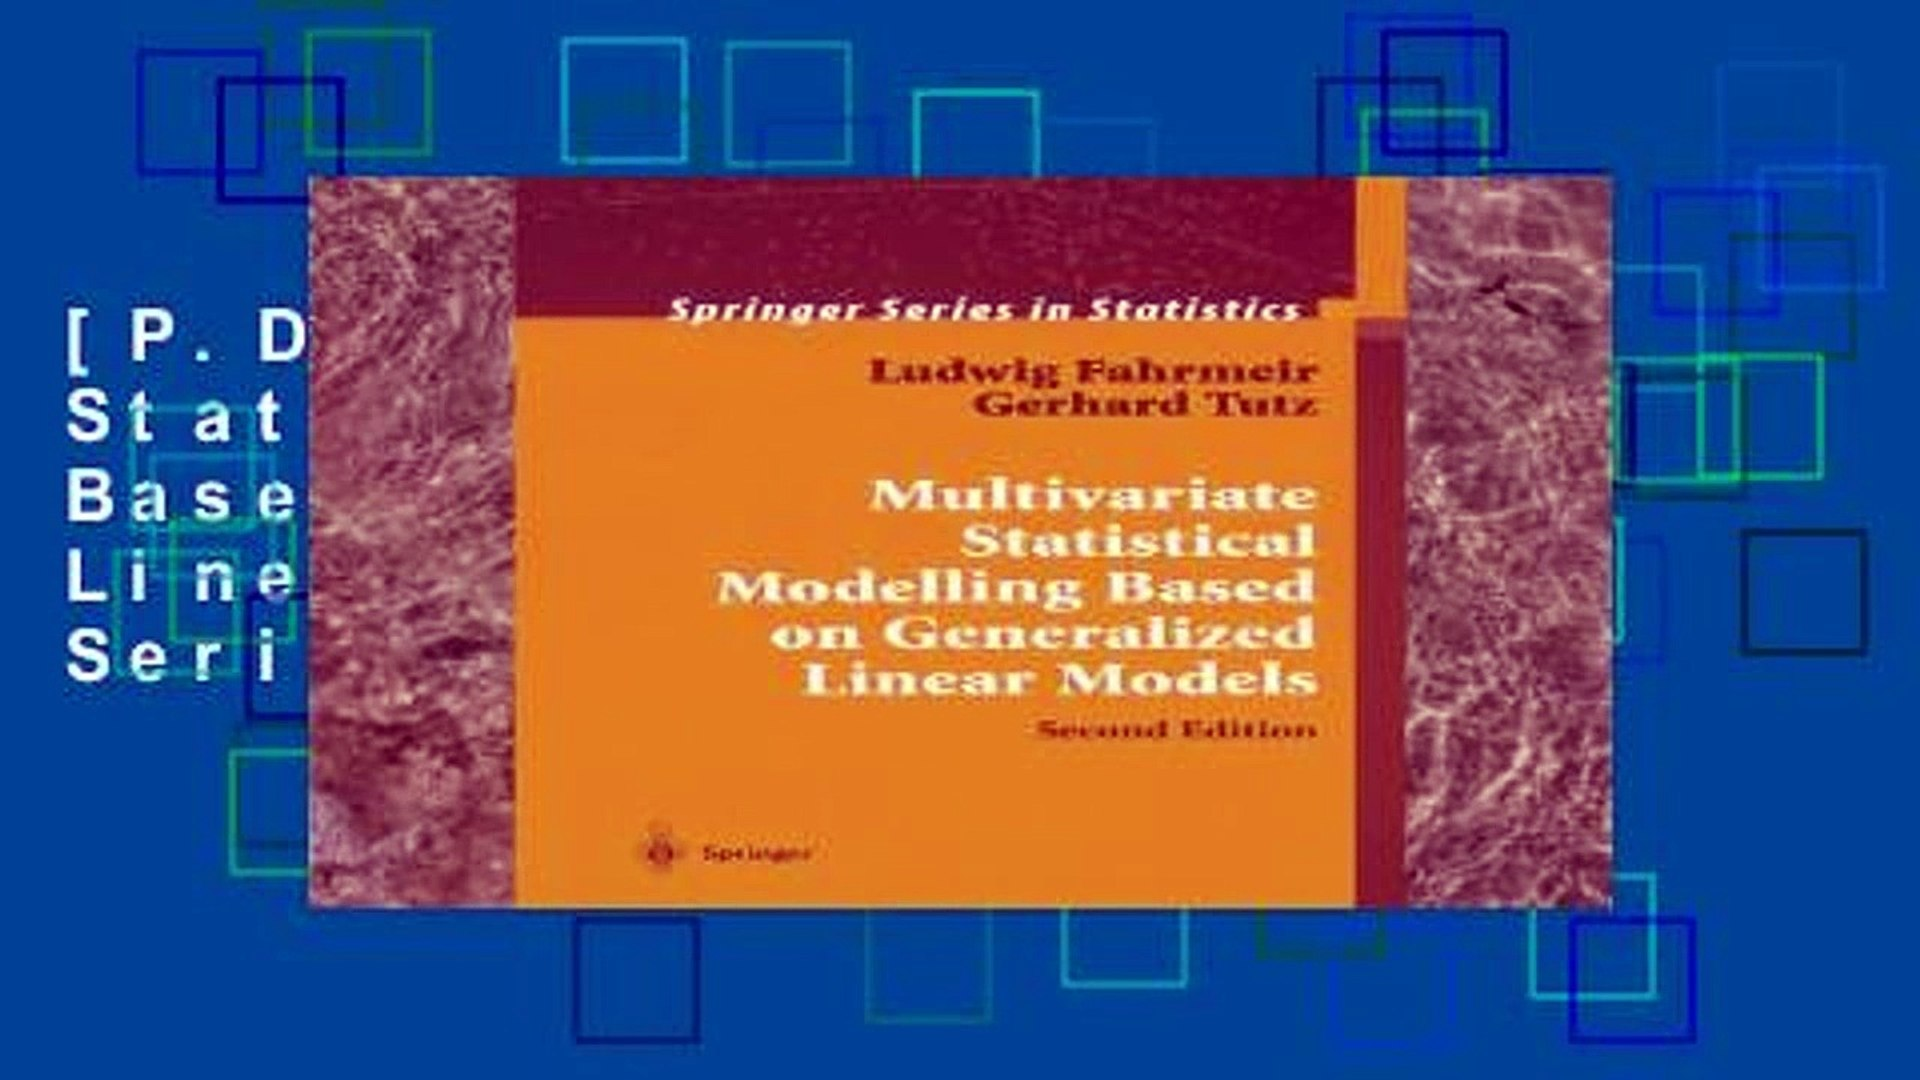 [P D F] Multivariate Statistical Modelling Based on Generalized Linear  Models (Springer Series in